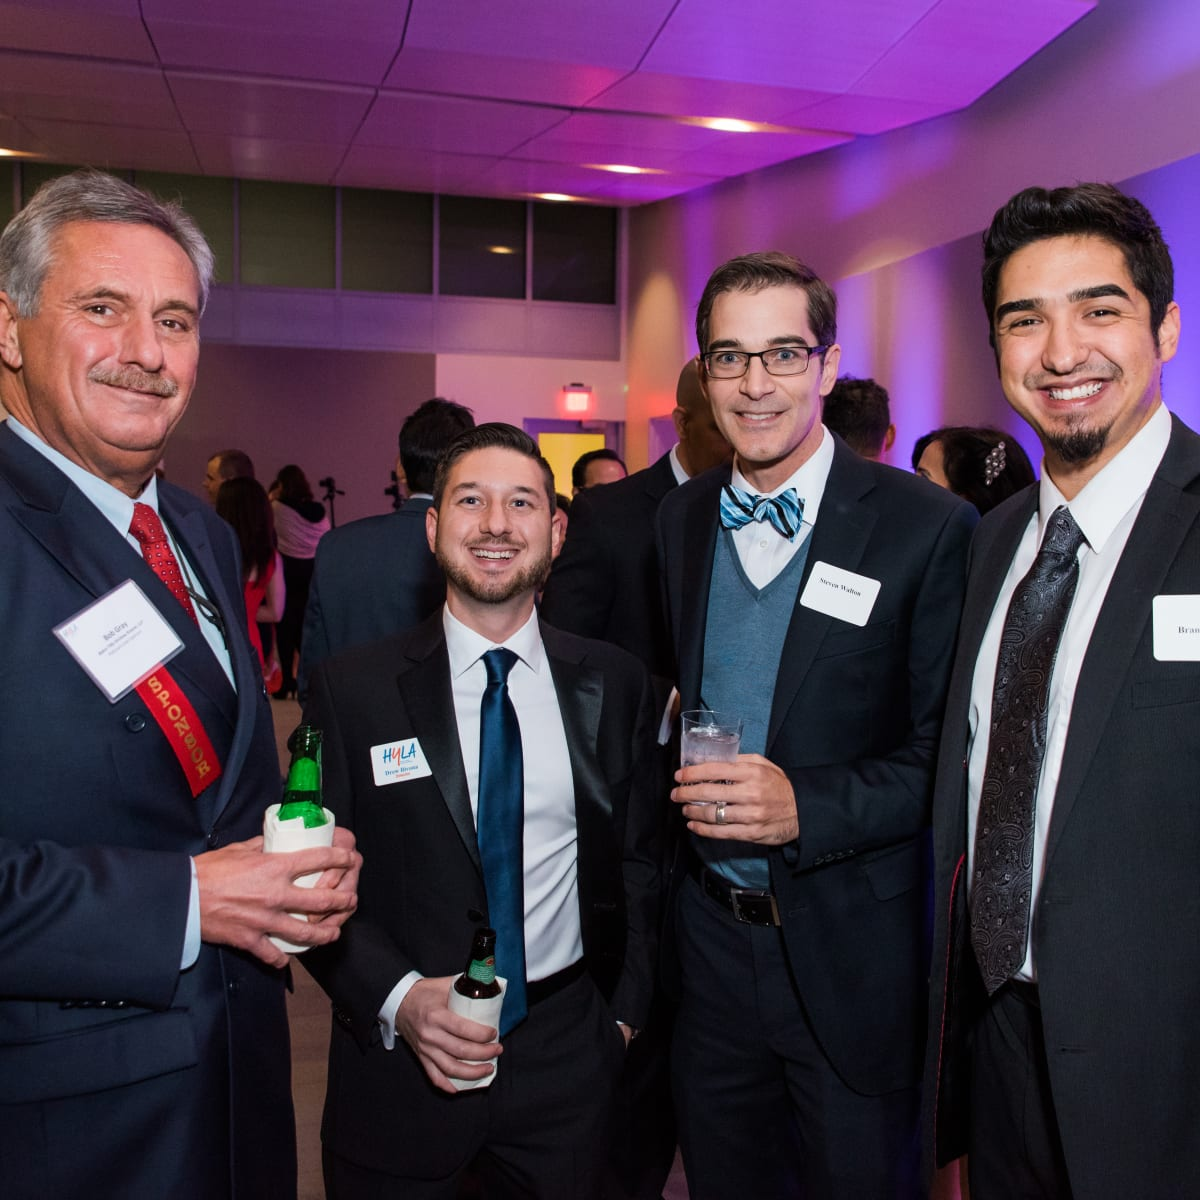 News, Houston Young Lawyers, holiday party, Dec. 2016. : Bob Gray, Drew Bovina, Steven Walton, Brandon Roy